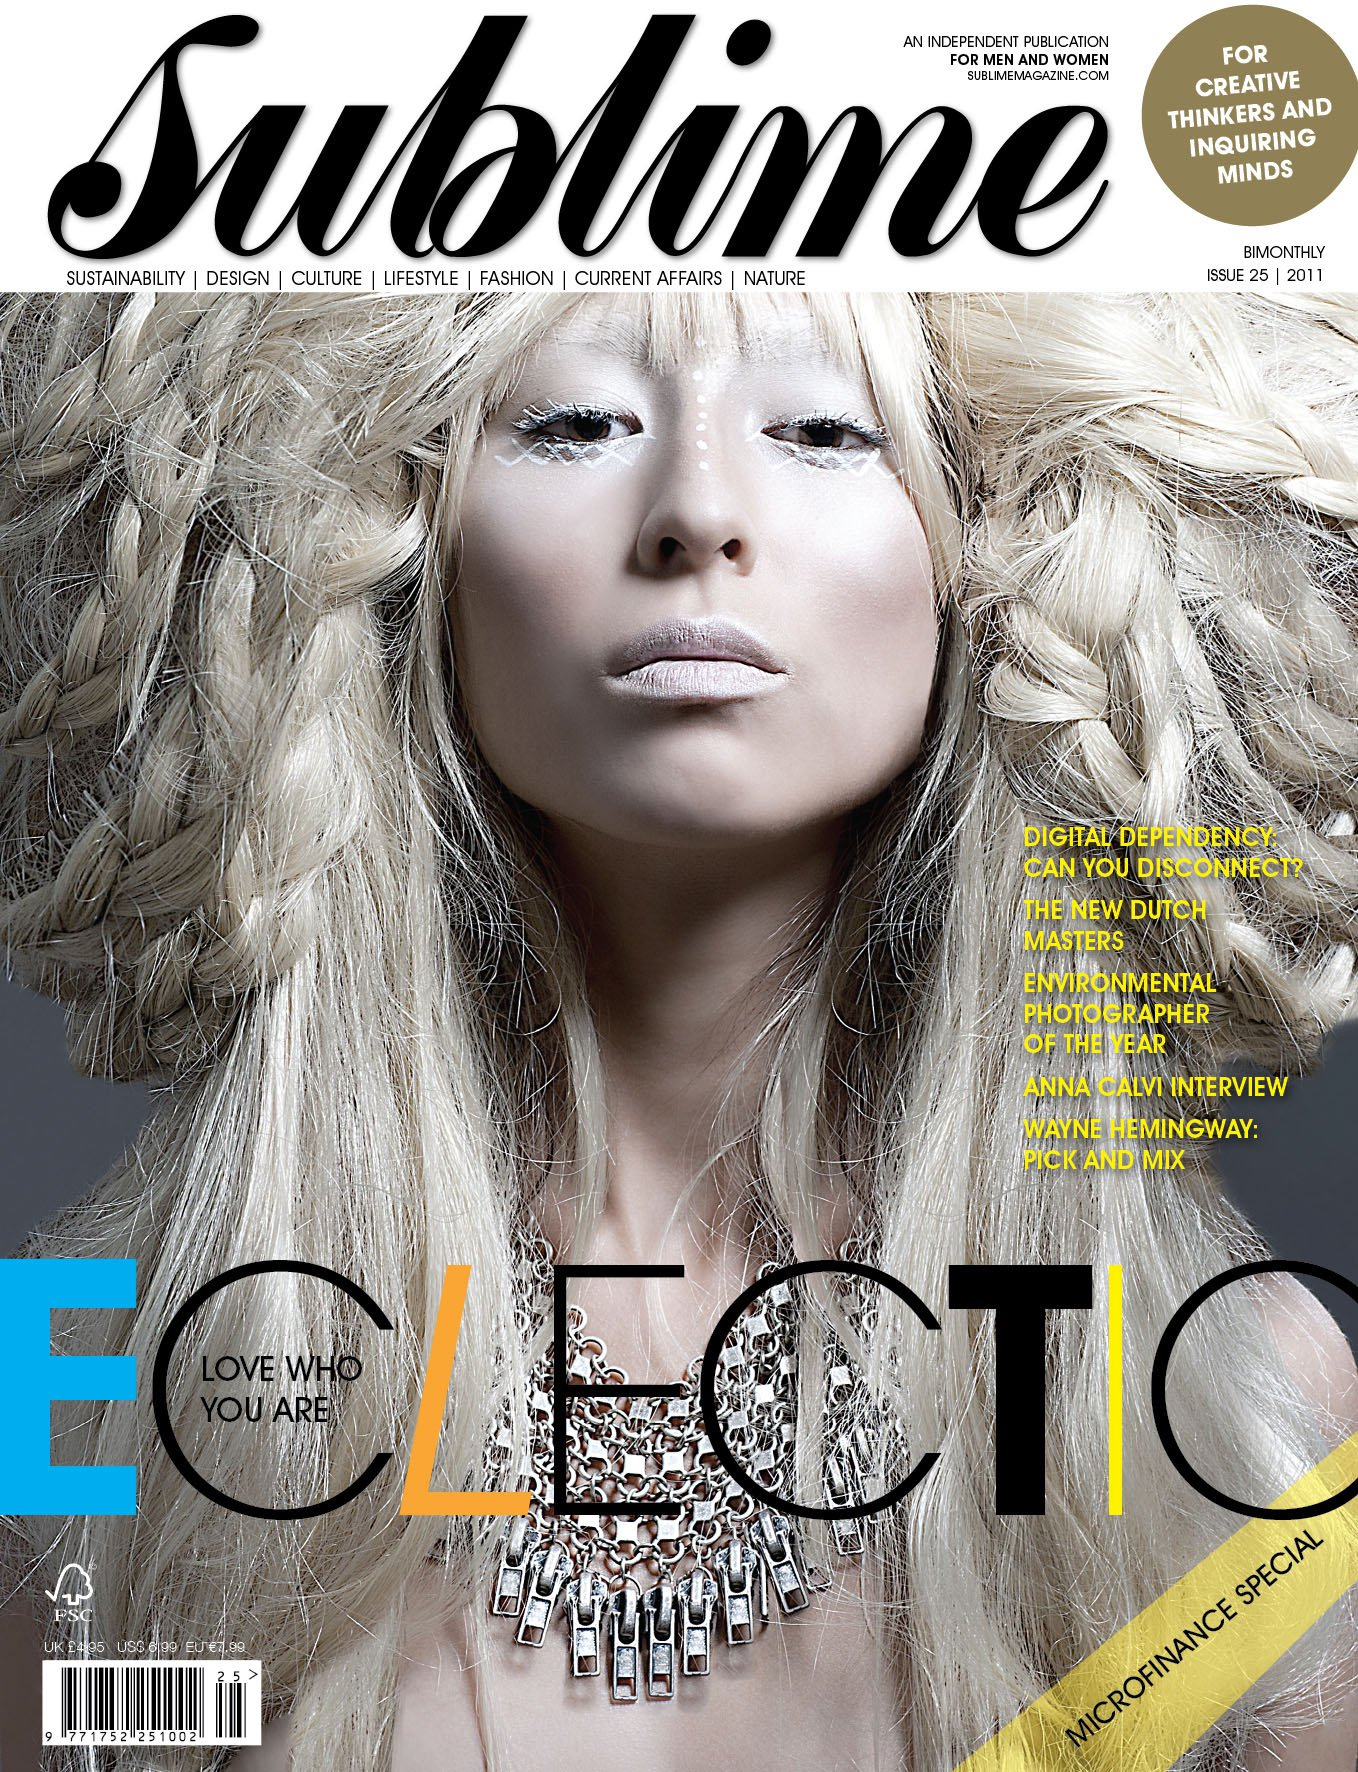 Sublime Front cover Issue 25 Photography by GEORGINA BOLTON KING